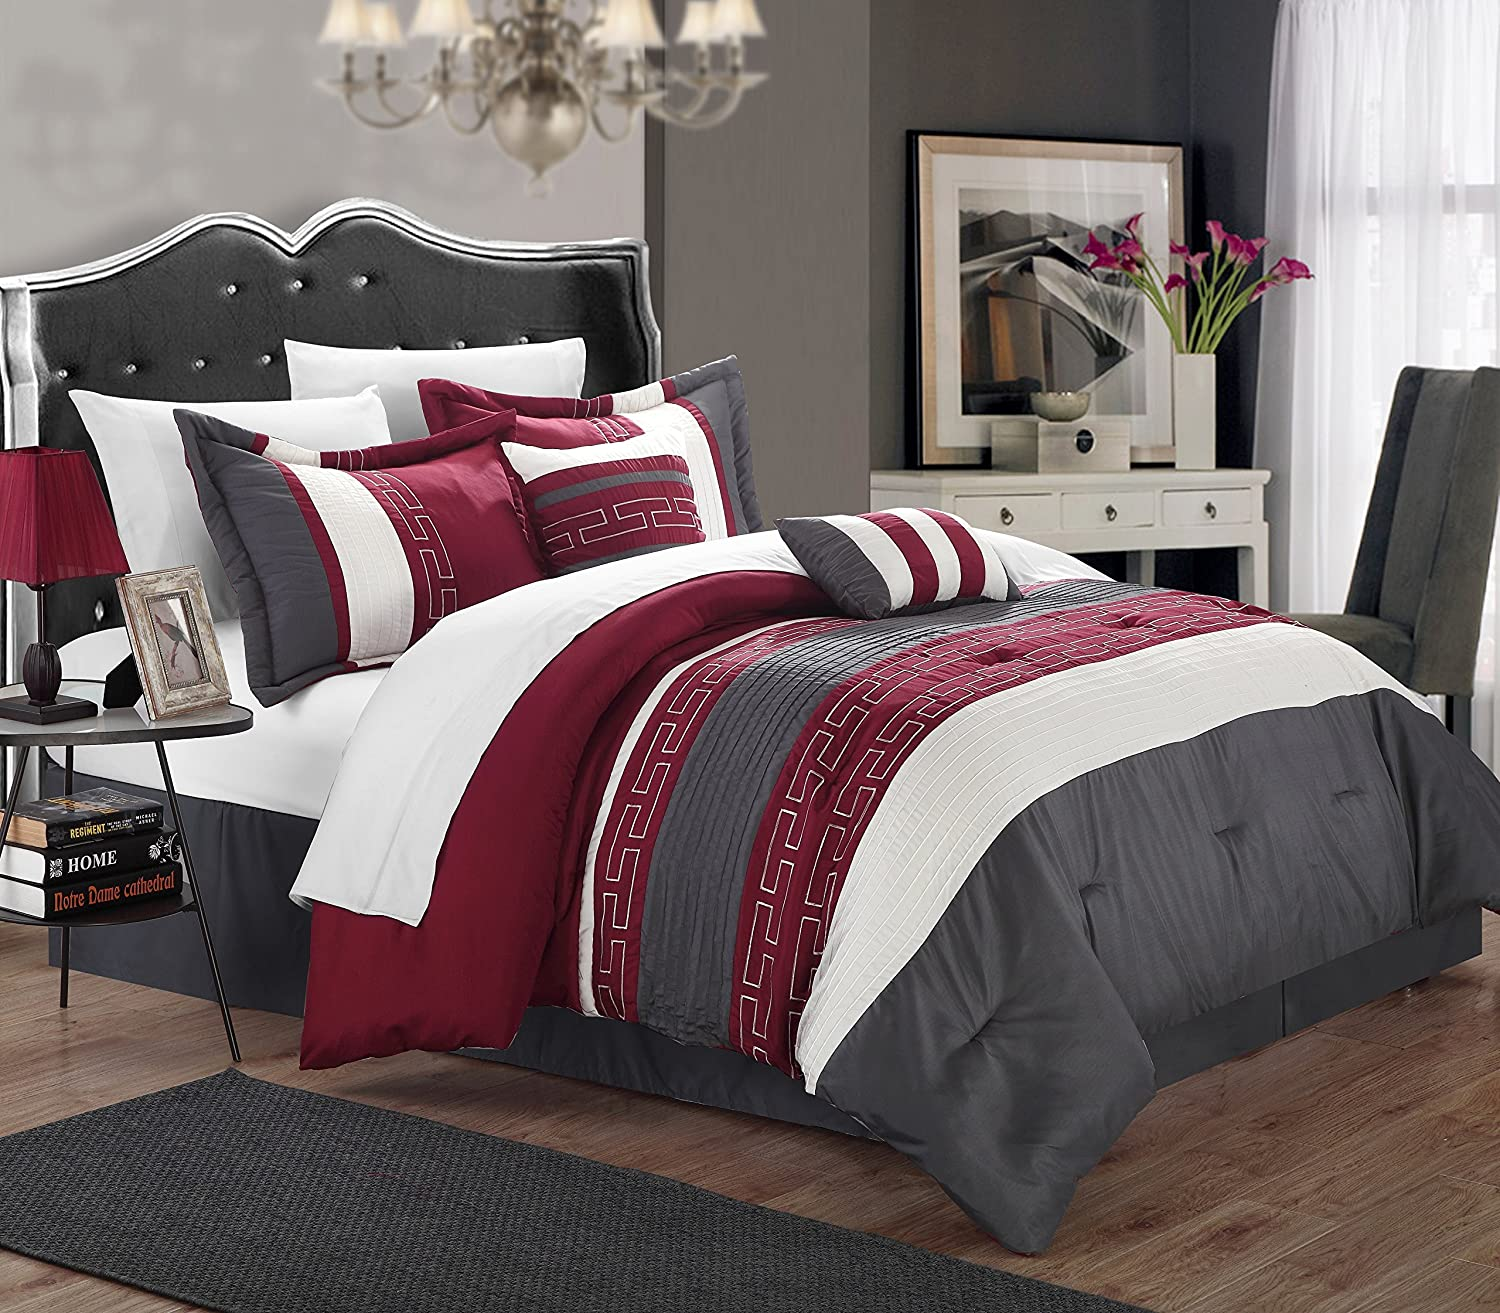 Sheet Set, Bedskirt, Shams and Decorative Pillows Included